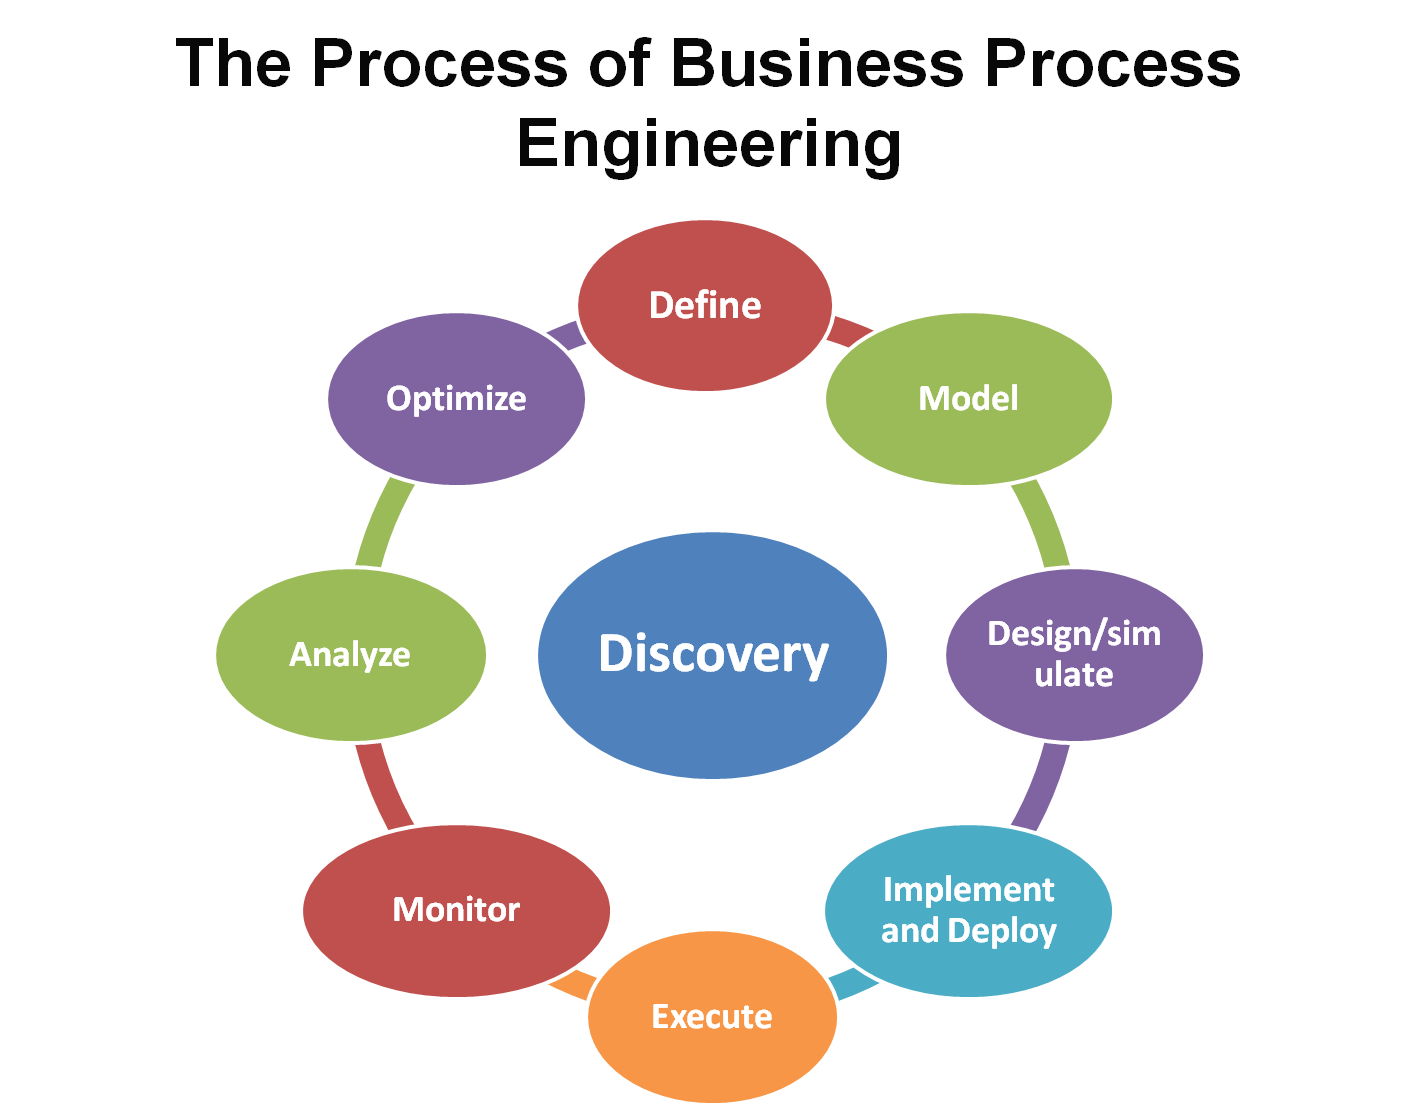 The task analysis process pros and cons